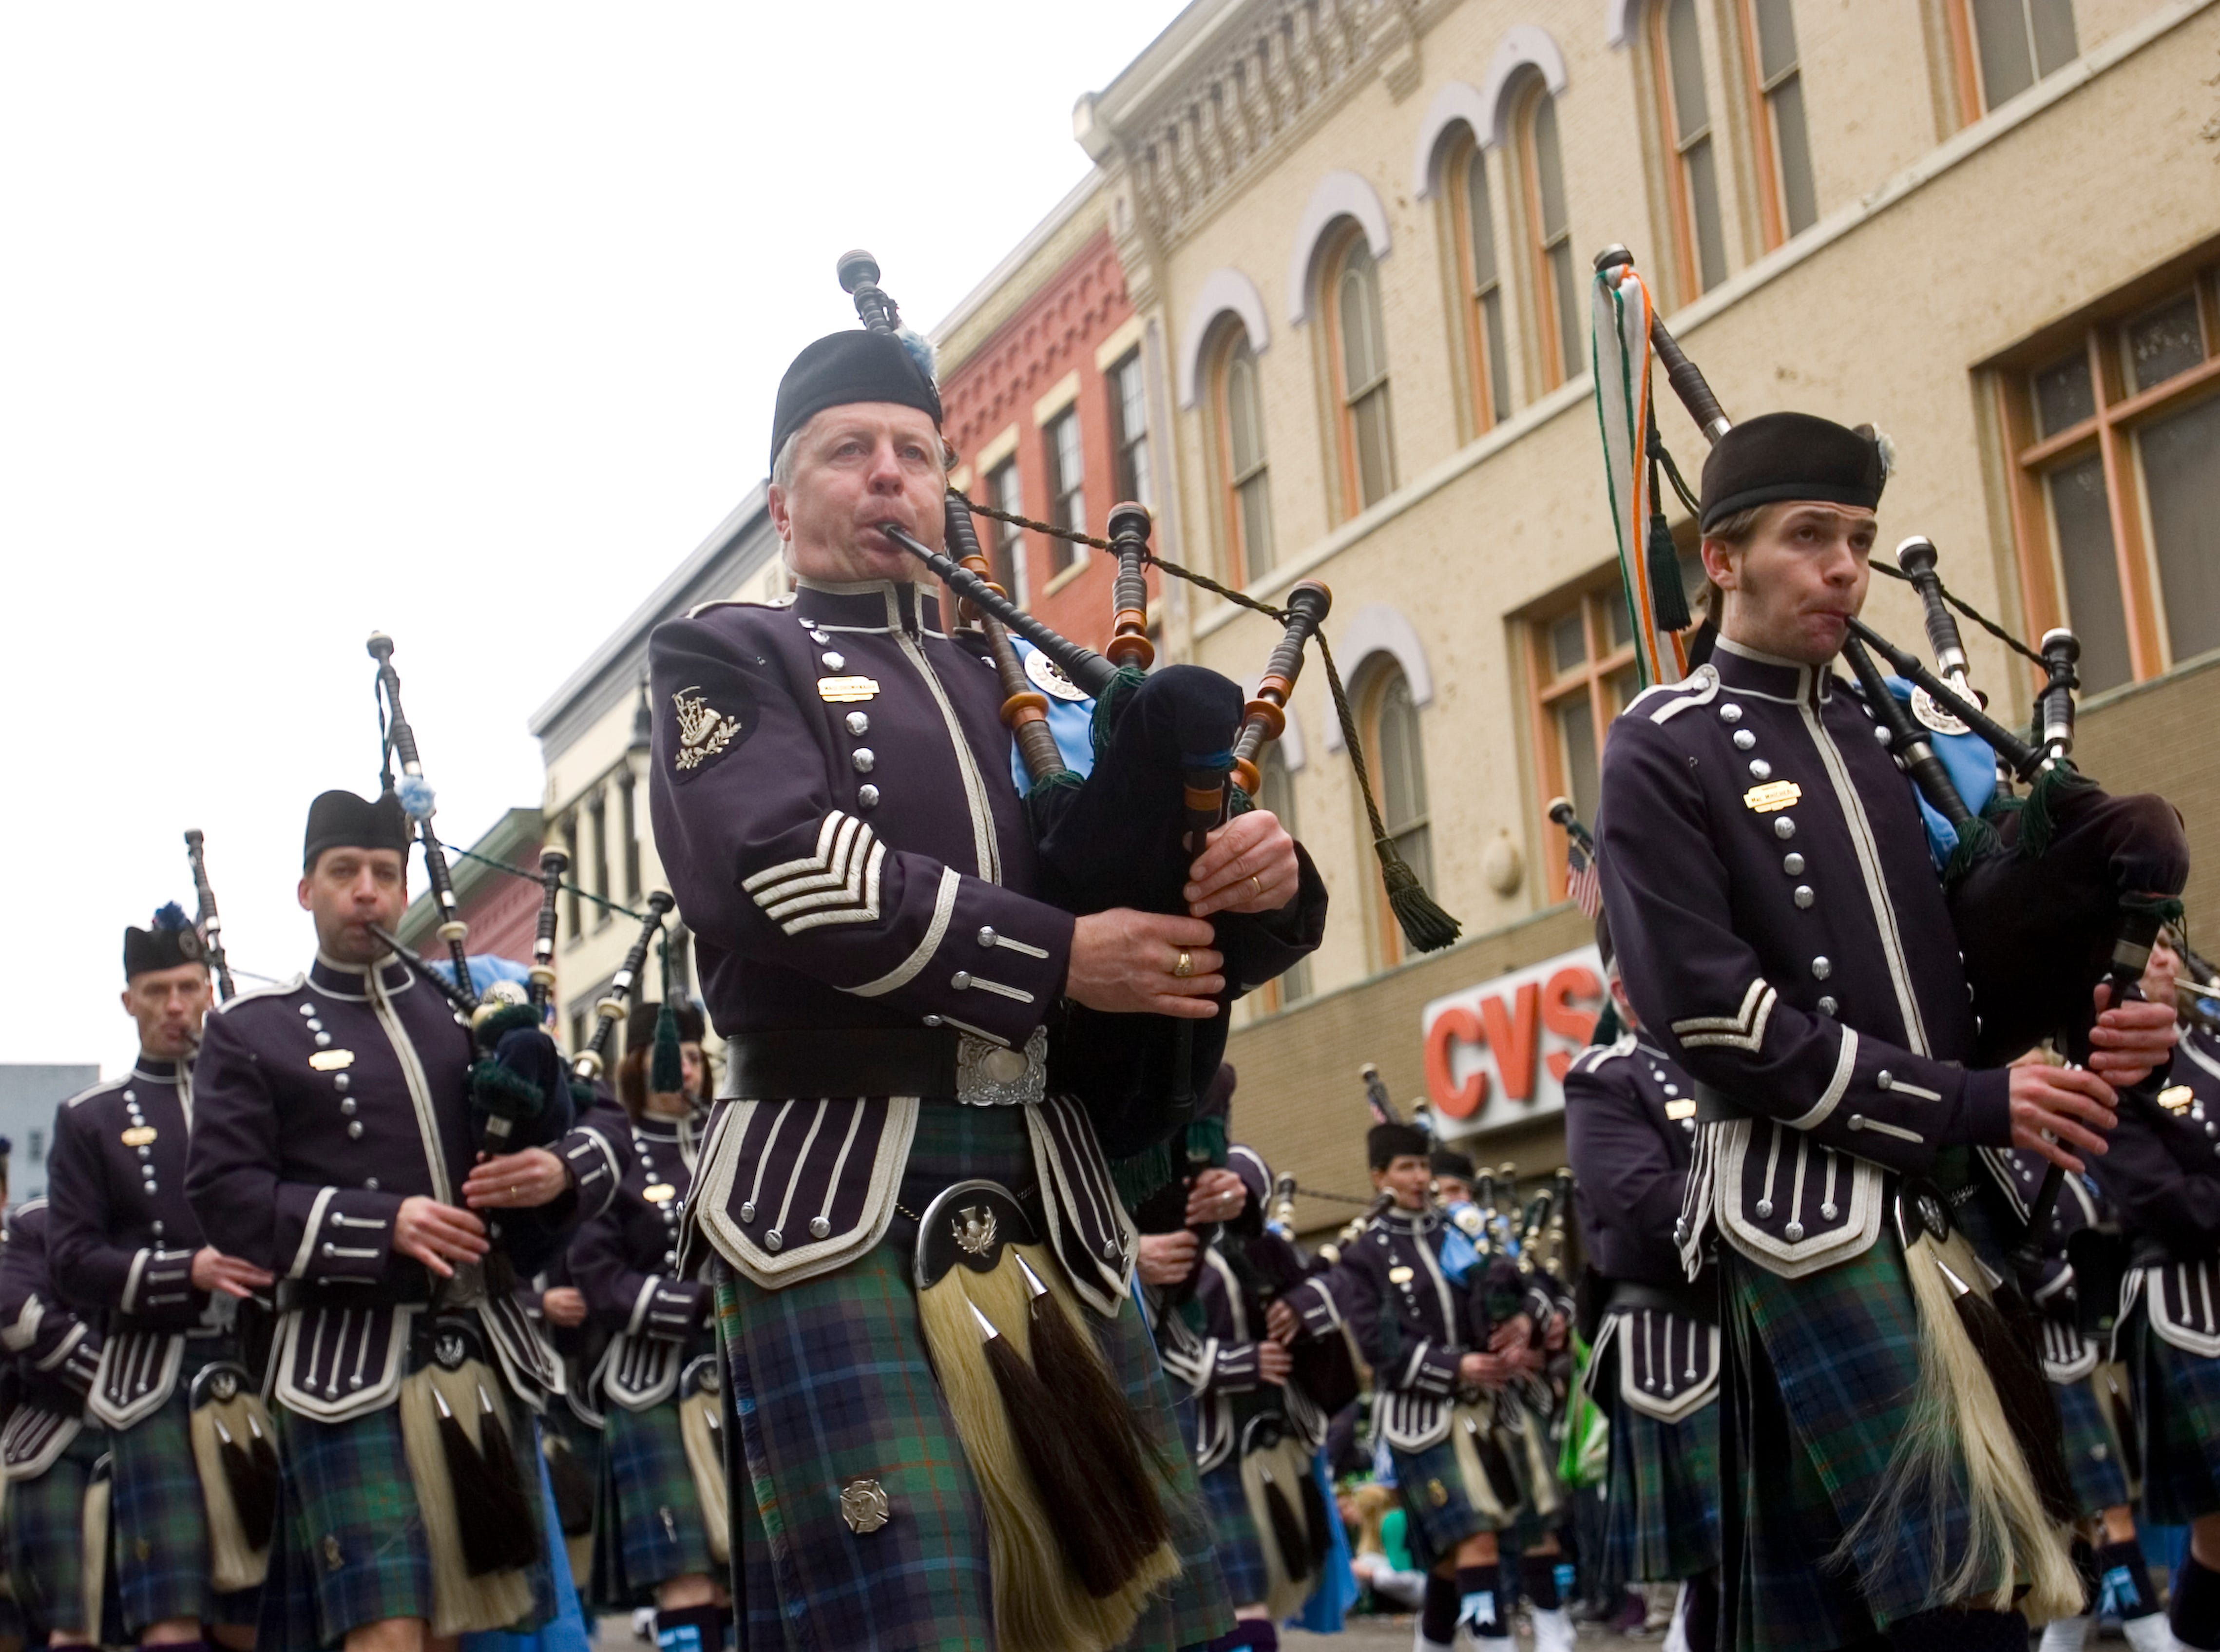 2011: The Edward P. Maloney Memorial Pipe Band participates in the 44th annual St. Patrick's Day parade is held in downtown Binghamton on Saturday.